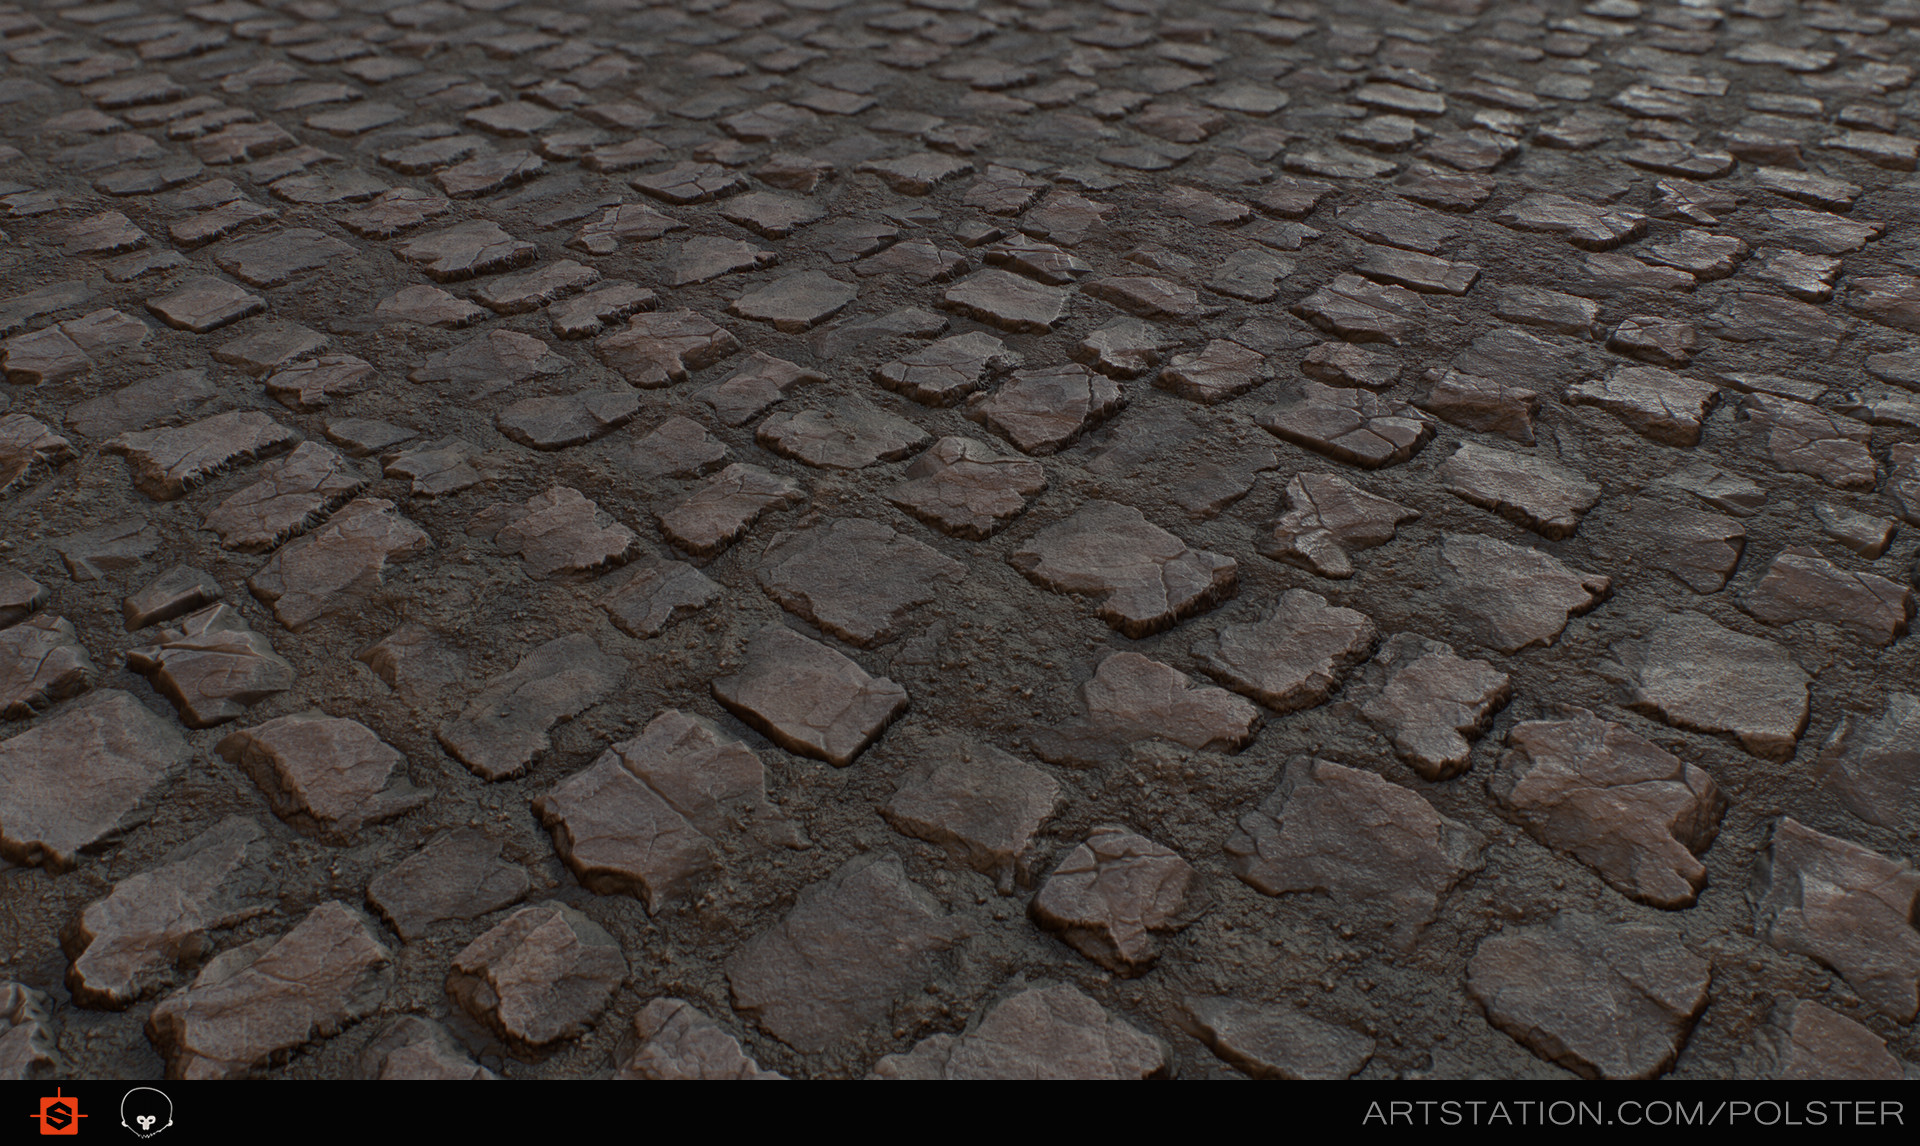 Stefan polster rough cobblestone day